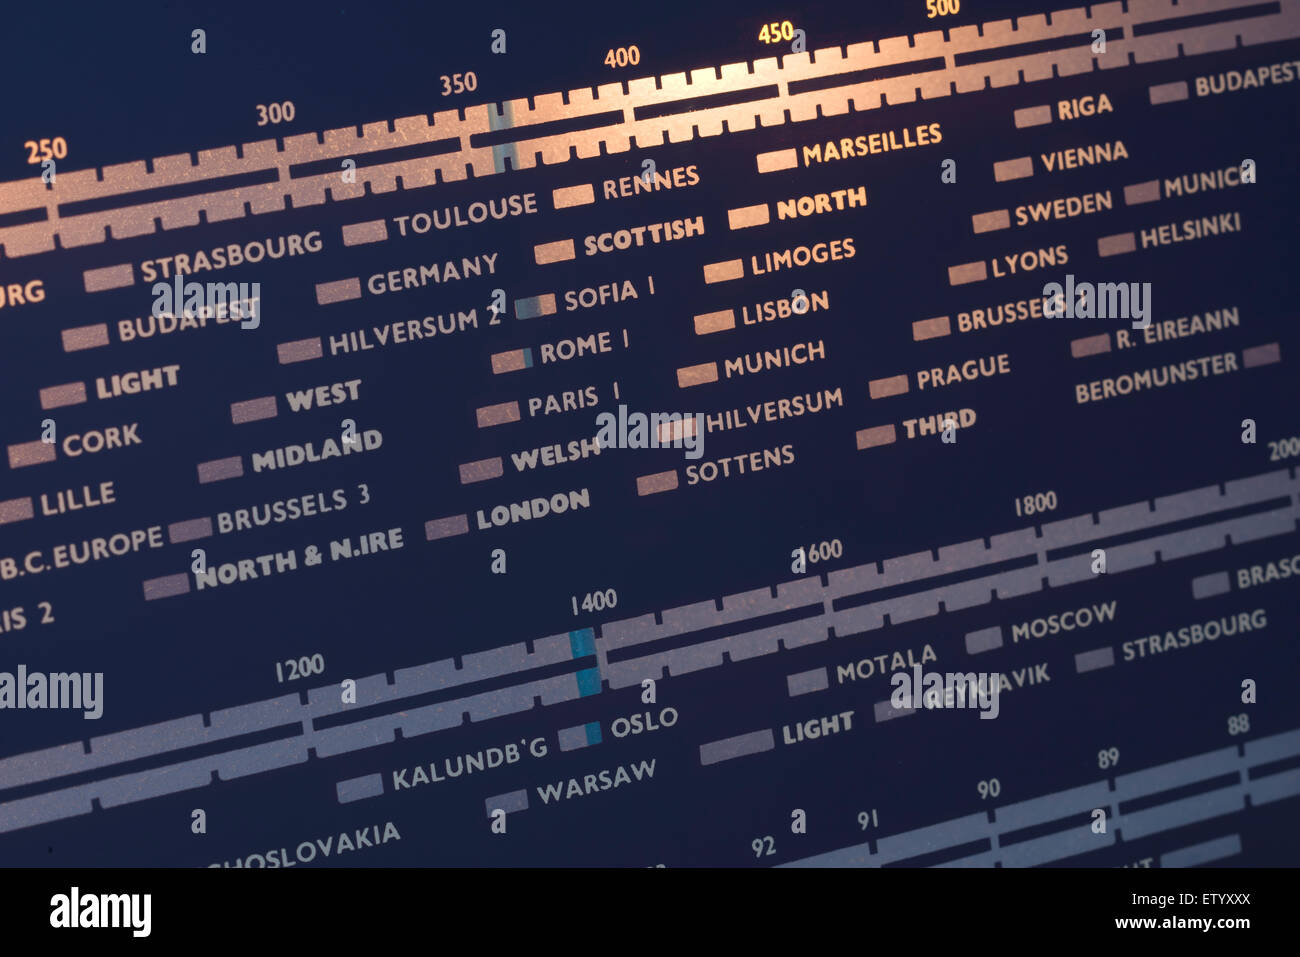 Old radiogram frequency dial. Medium wave list of radio stations. Tuning positions. Stock Photo